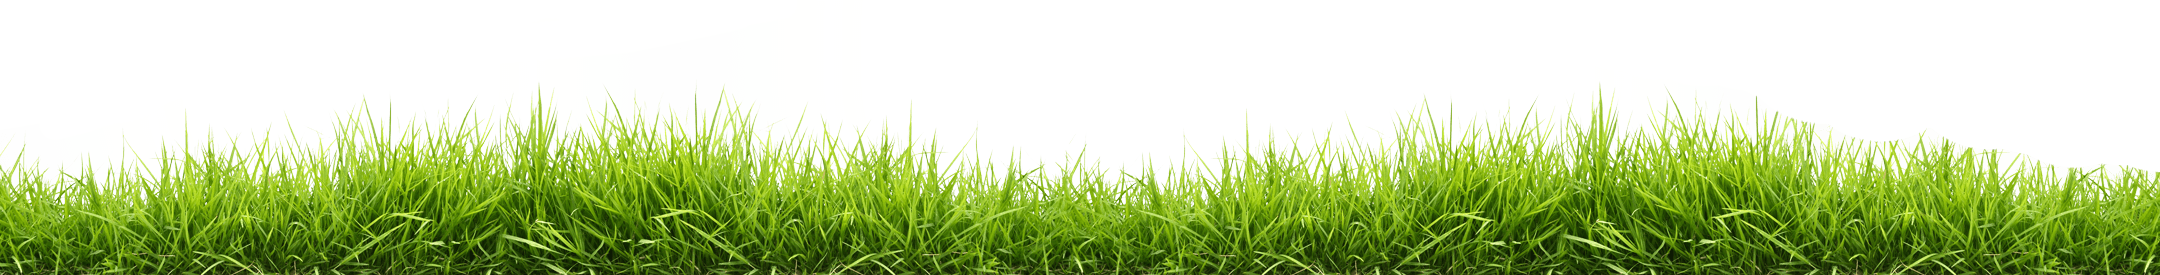 How To Make Grass Lines